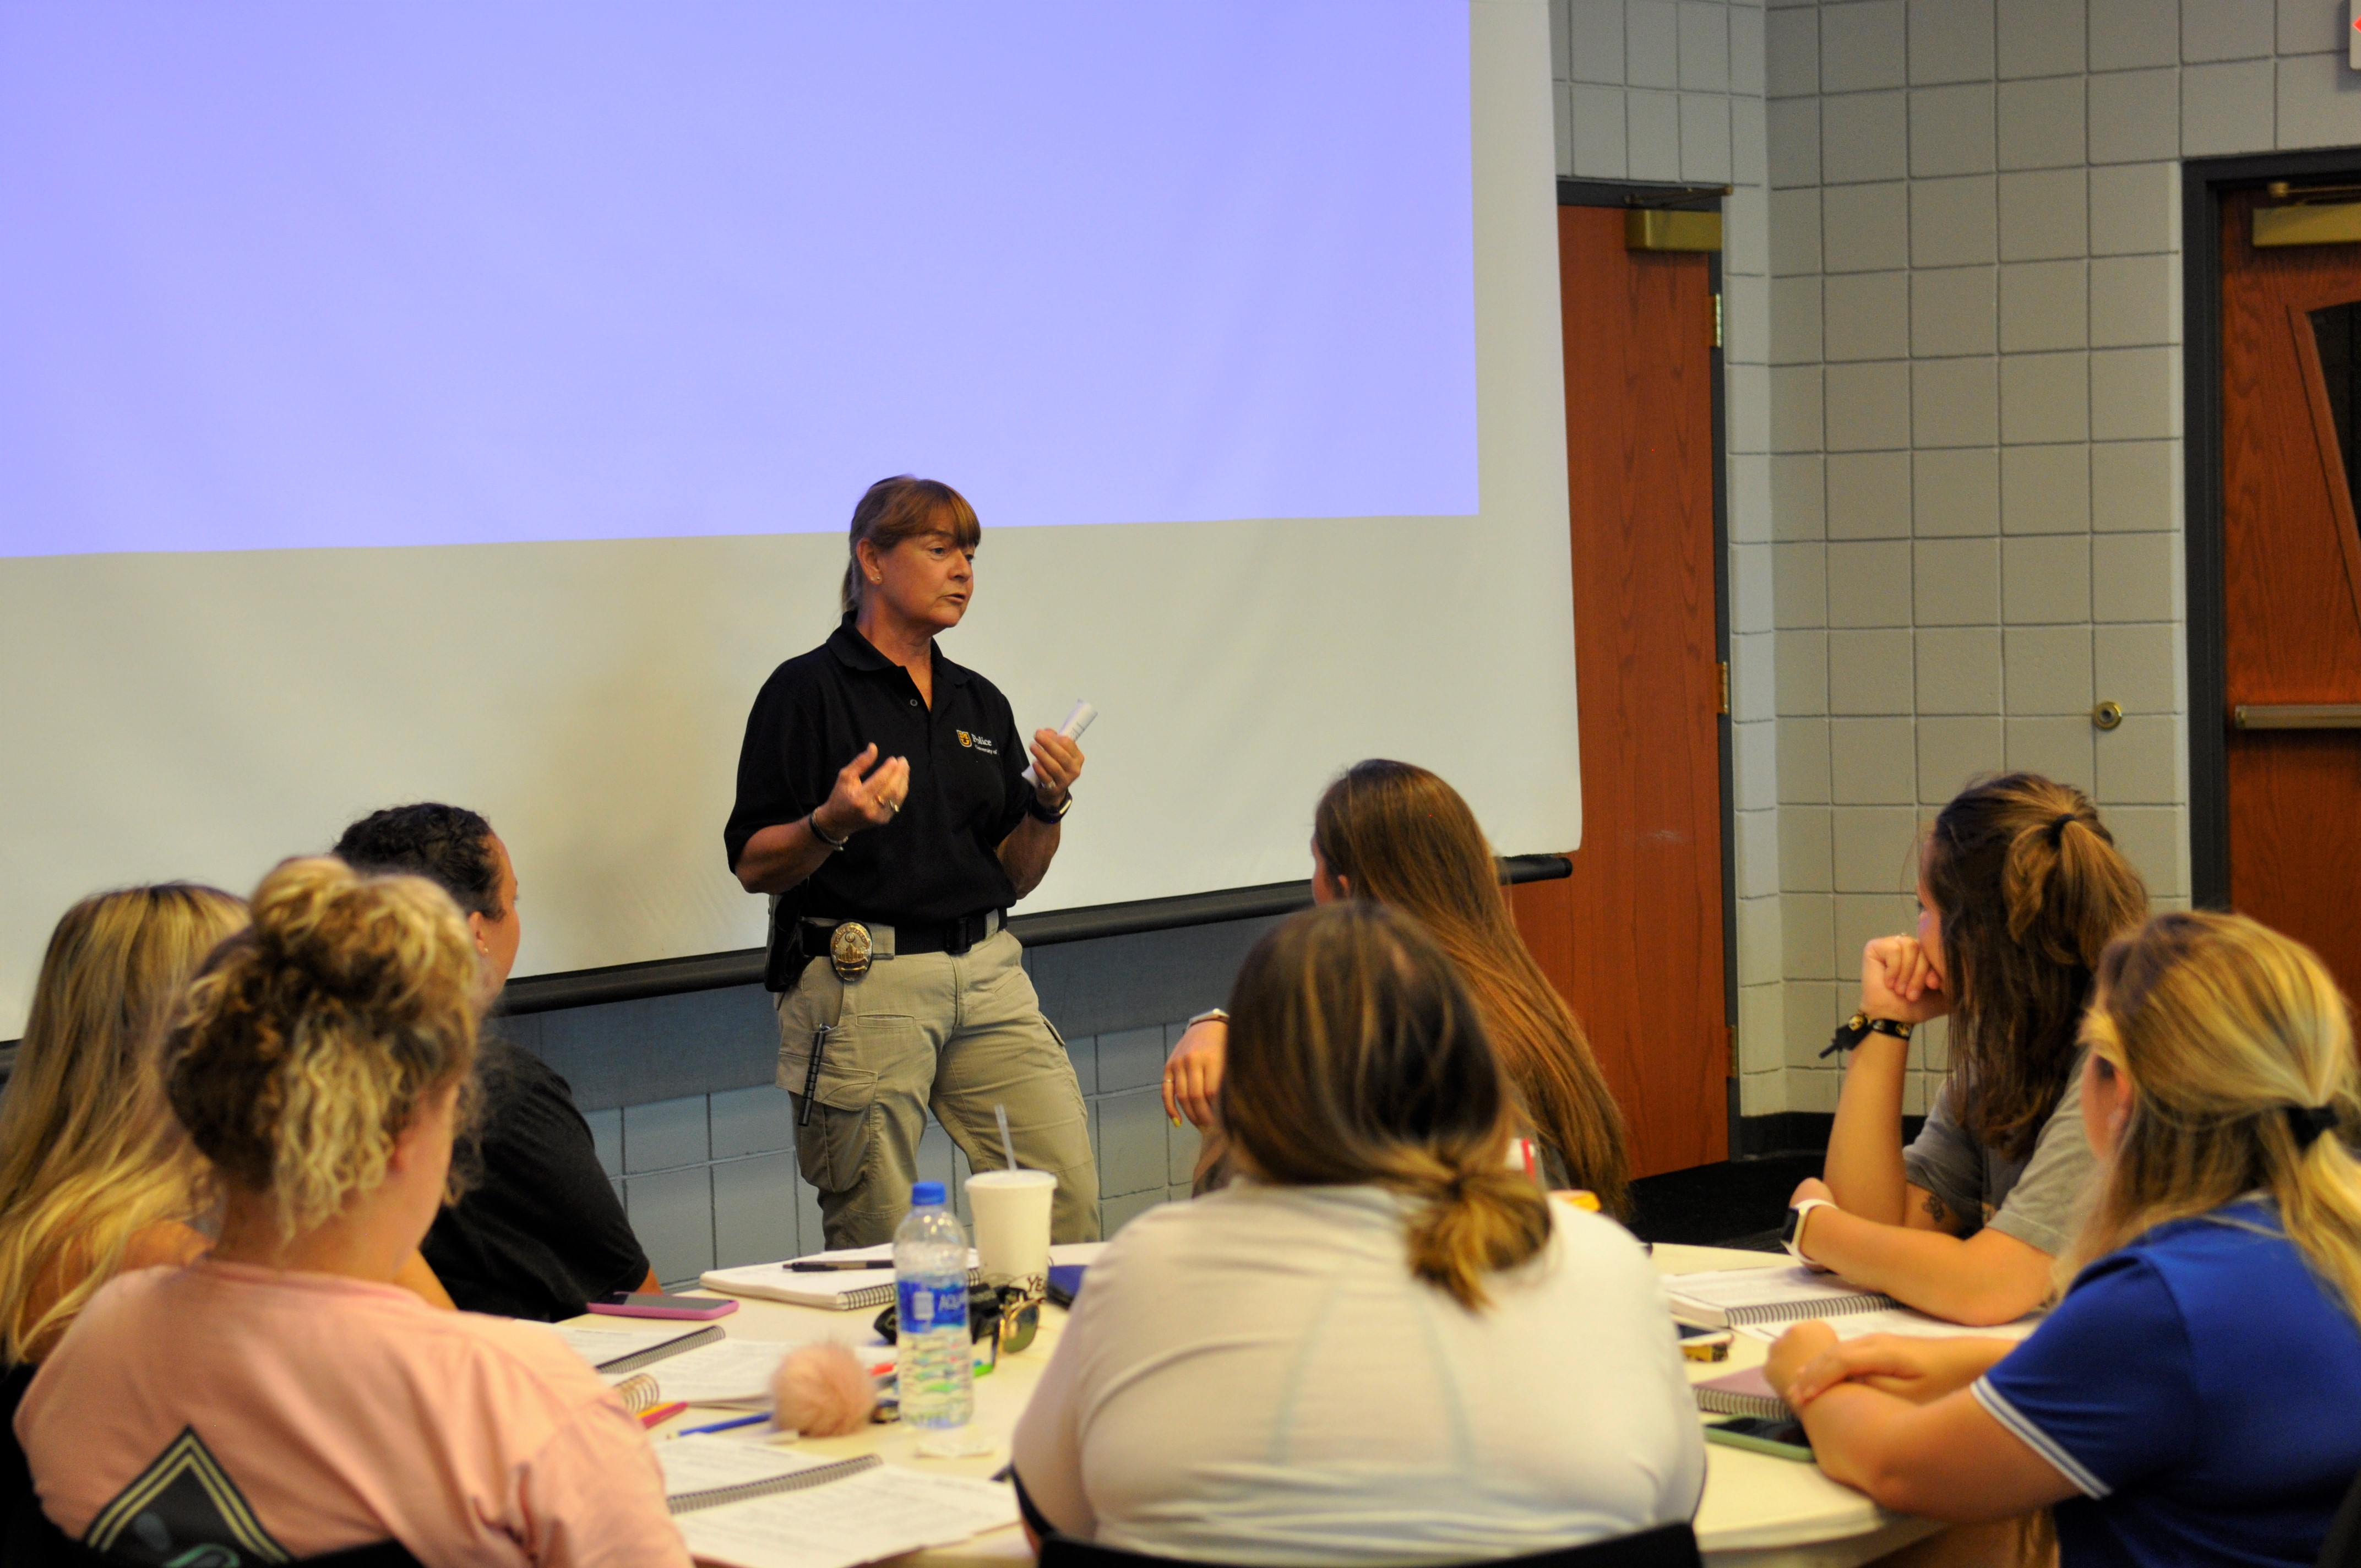 Joan Haaf, a crime prevention officer with the University of Missouri Police Department, met recently with members of several sororities associated with MU to talk about safety issue before upcoming rush week.